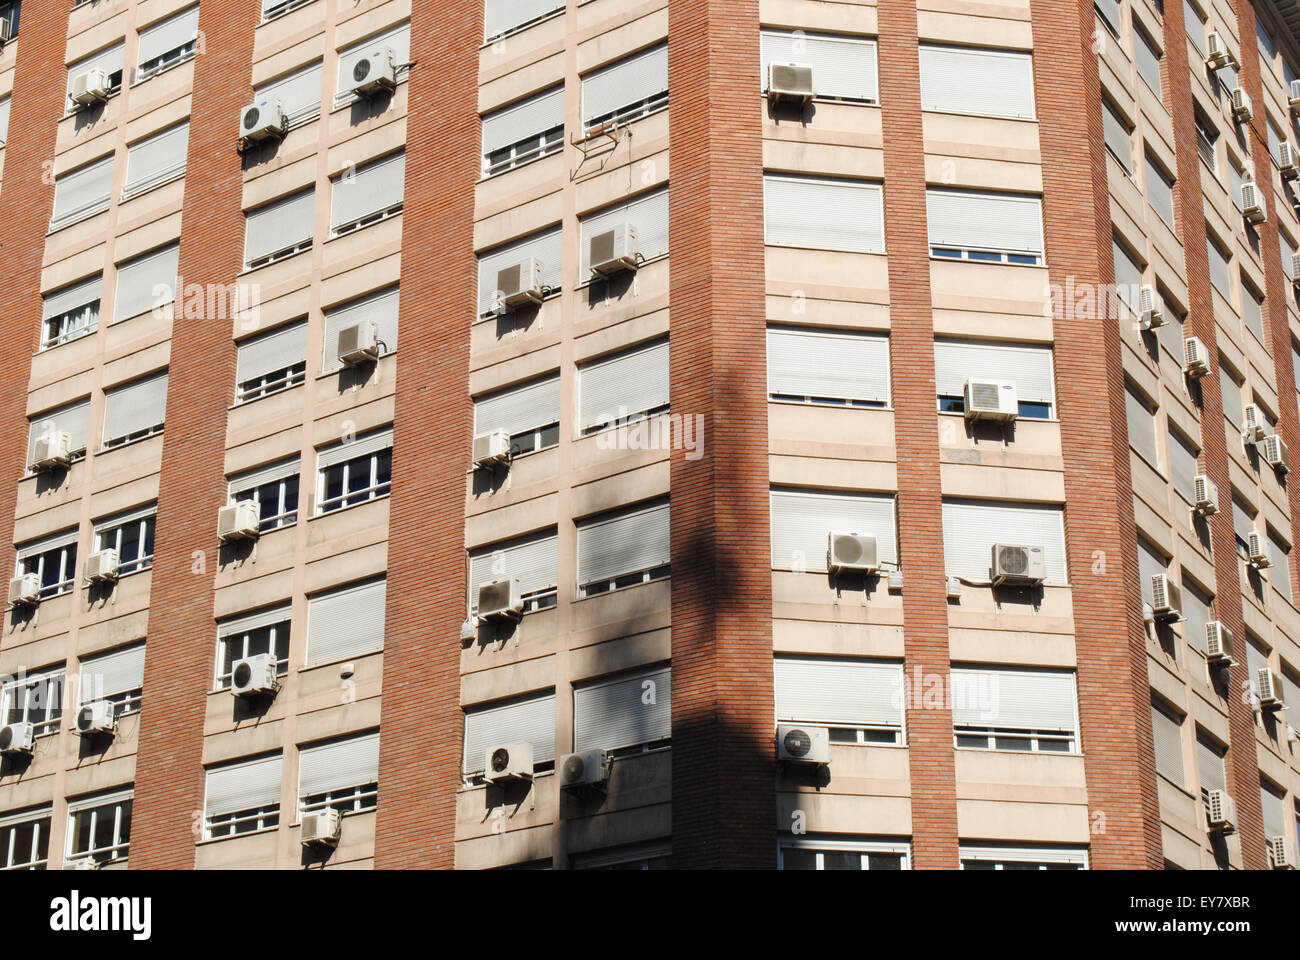 A tower block with several air conditioners on a hot summer day in Zaragoza, Spain. Stock Photo